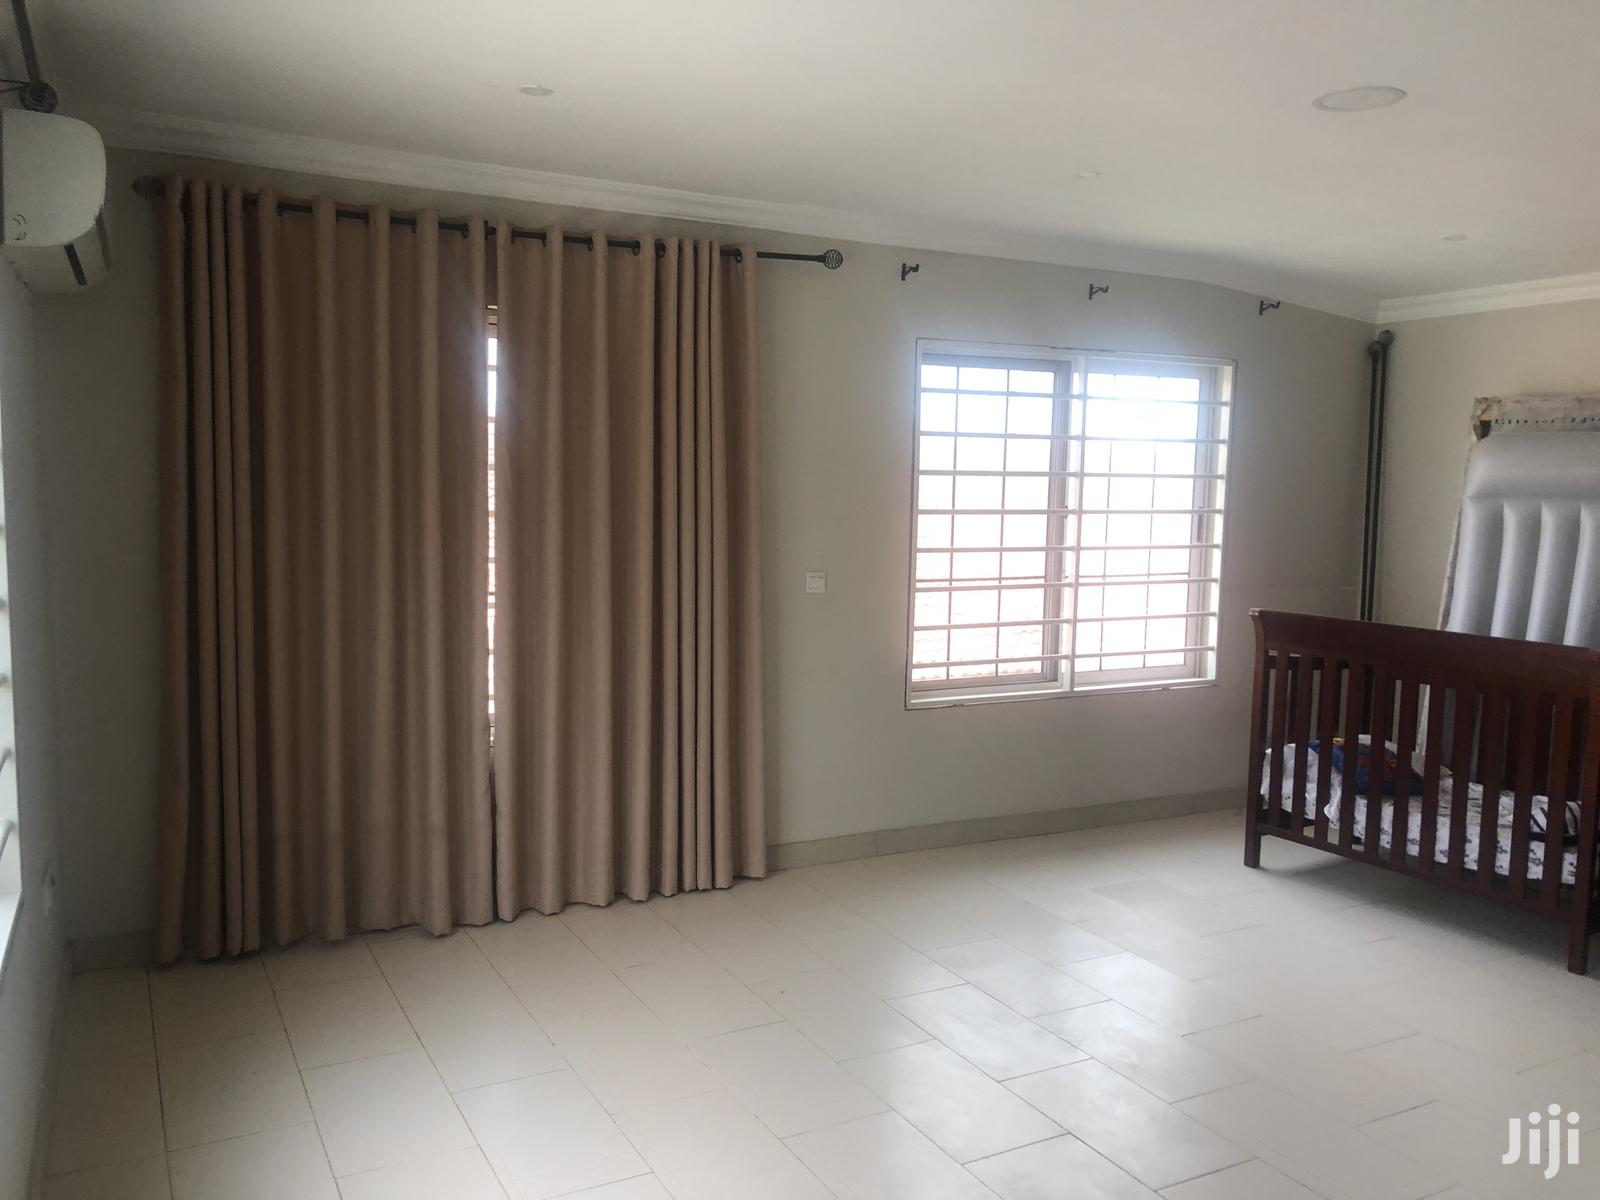 3 Bedroom House At East Legon Hills | Houses & Apartments For Rent for sale in East Legon, Greater Accra, Ghana